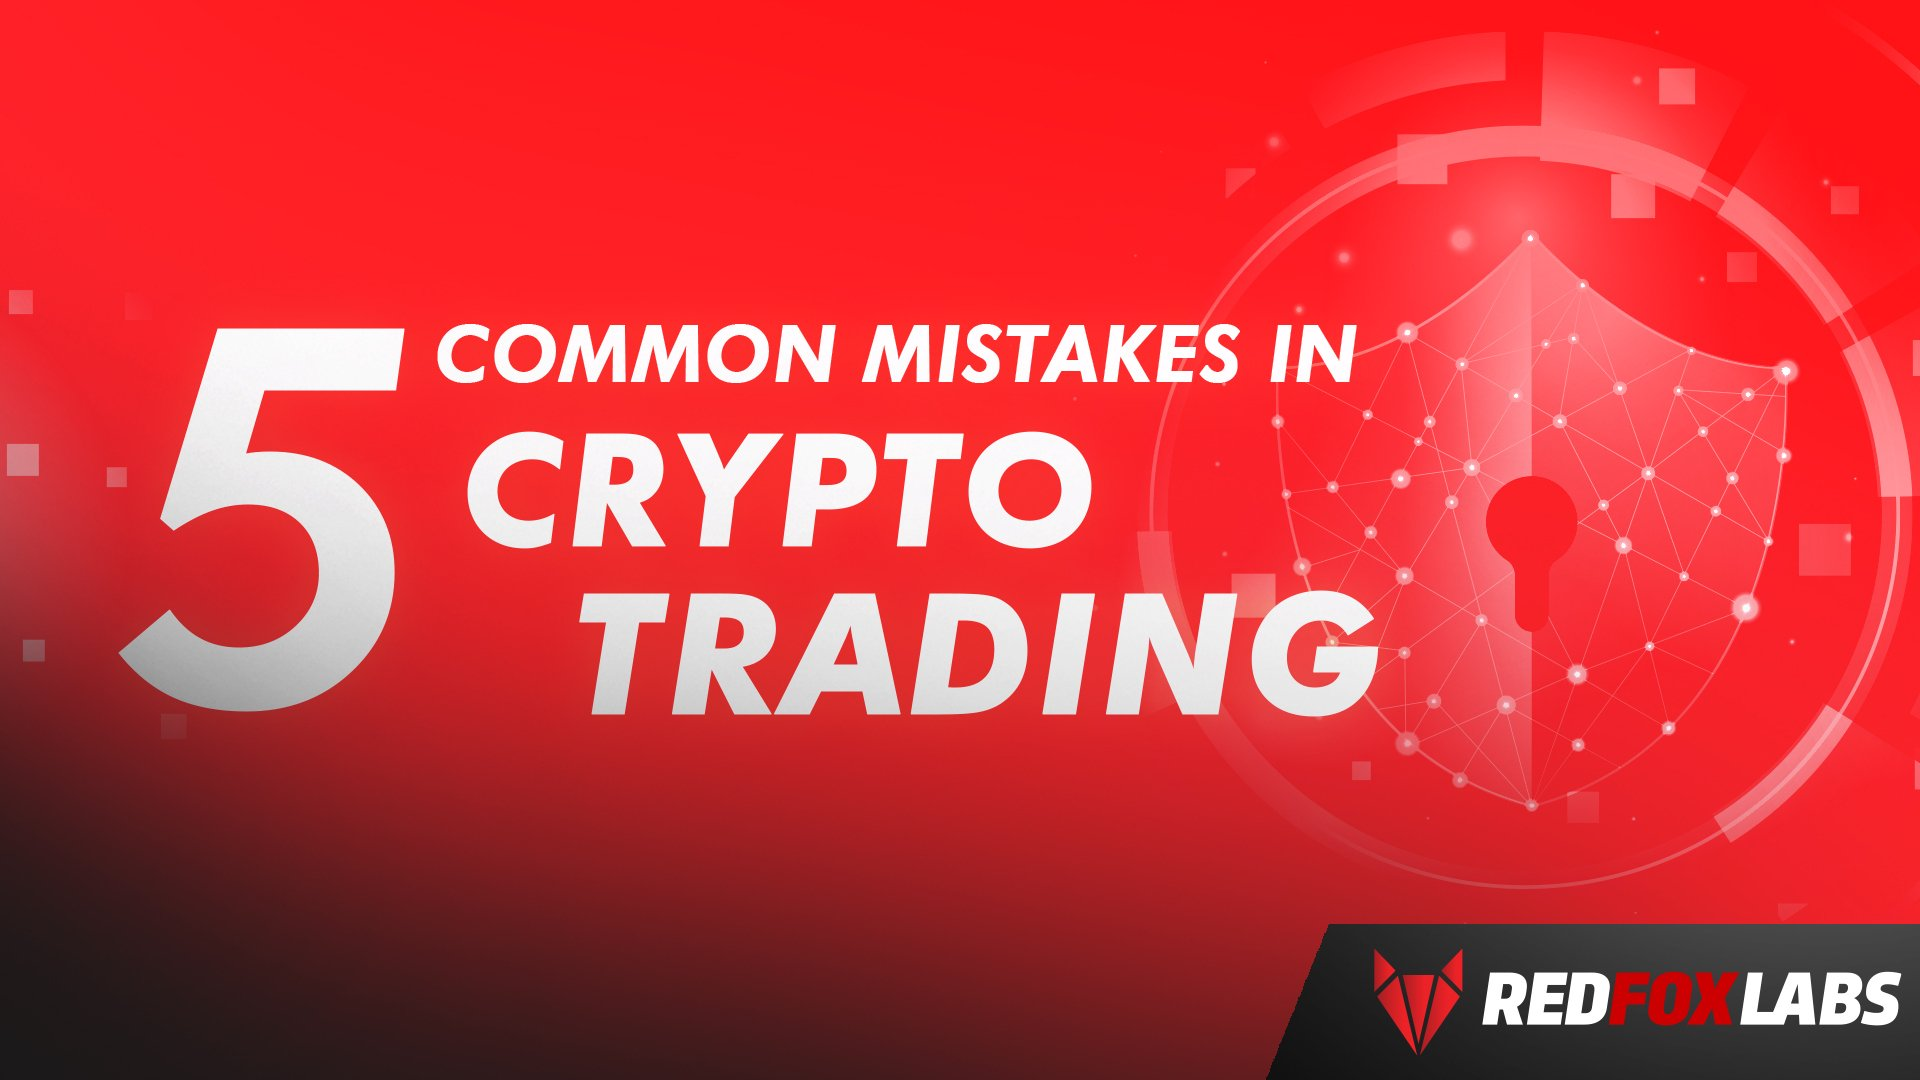 5 Common Mistakes in Crypto Trading